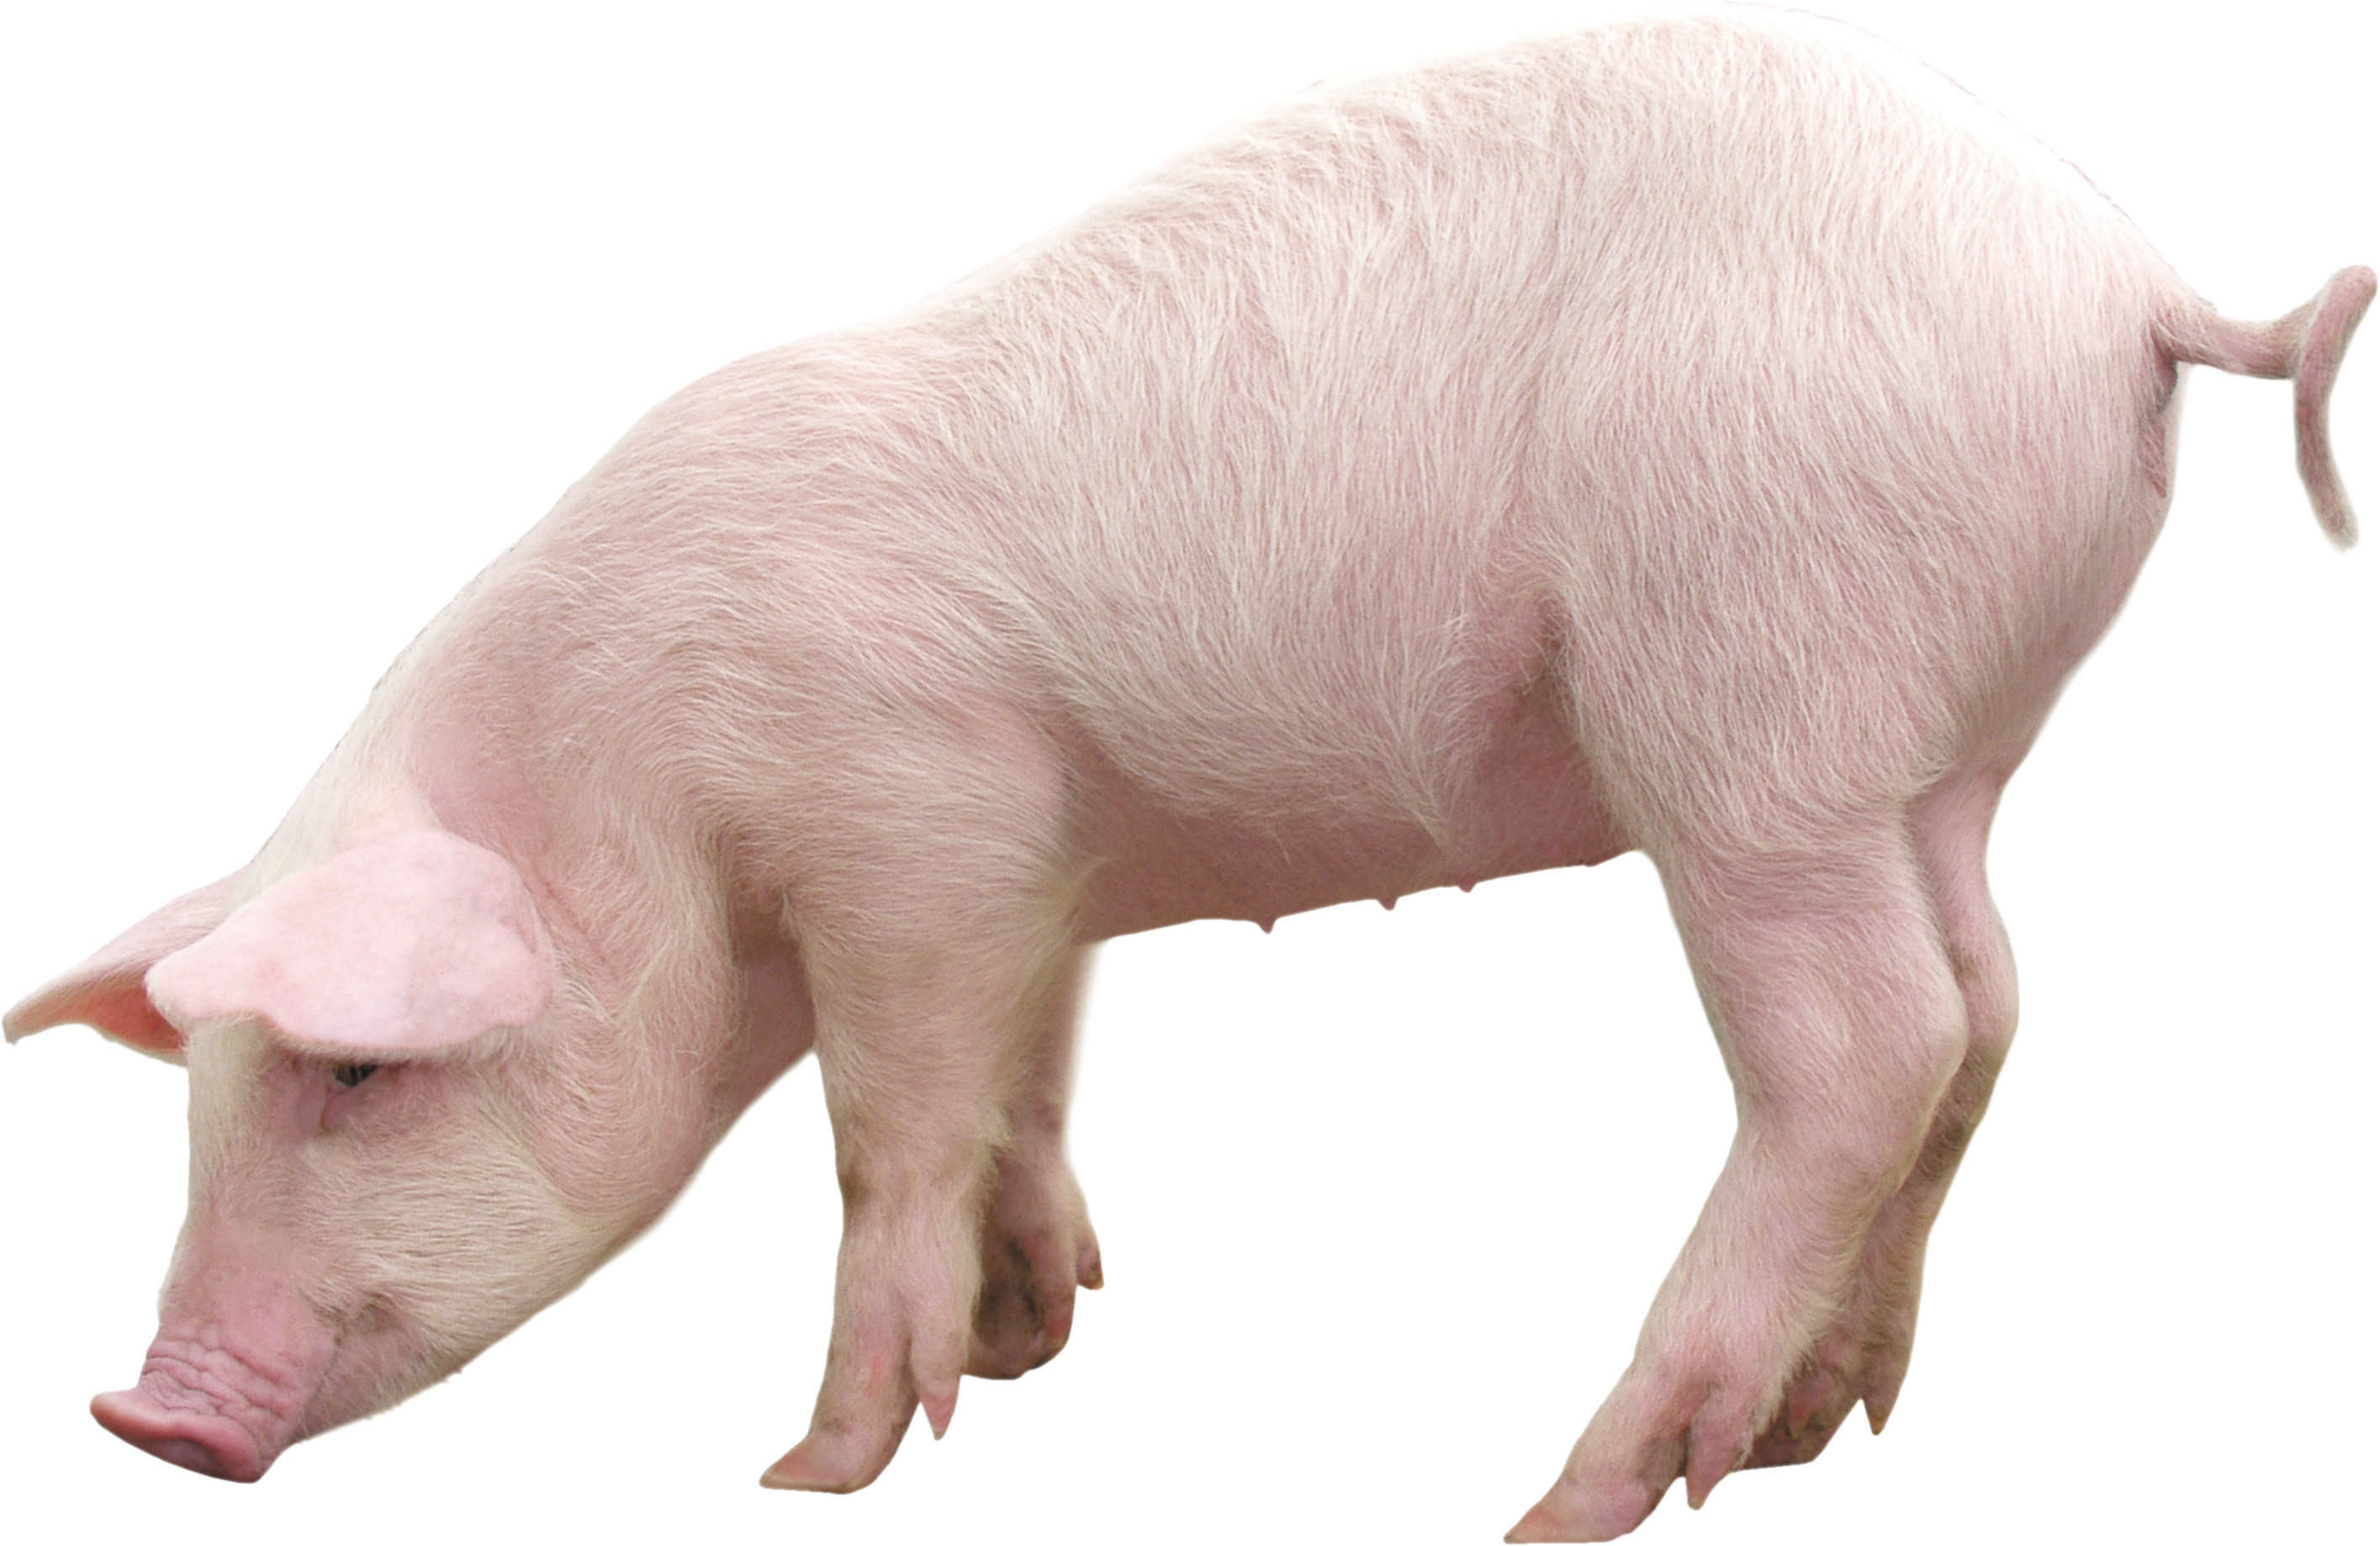 Res: 2830x1838, pig PNG image - Pig PNG - Baby Pig PNG HD